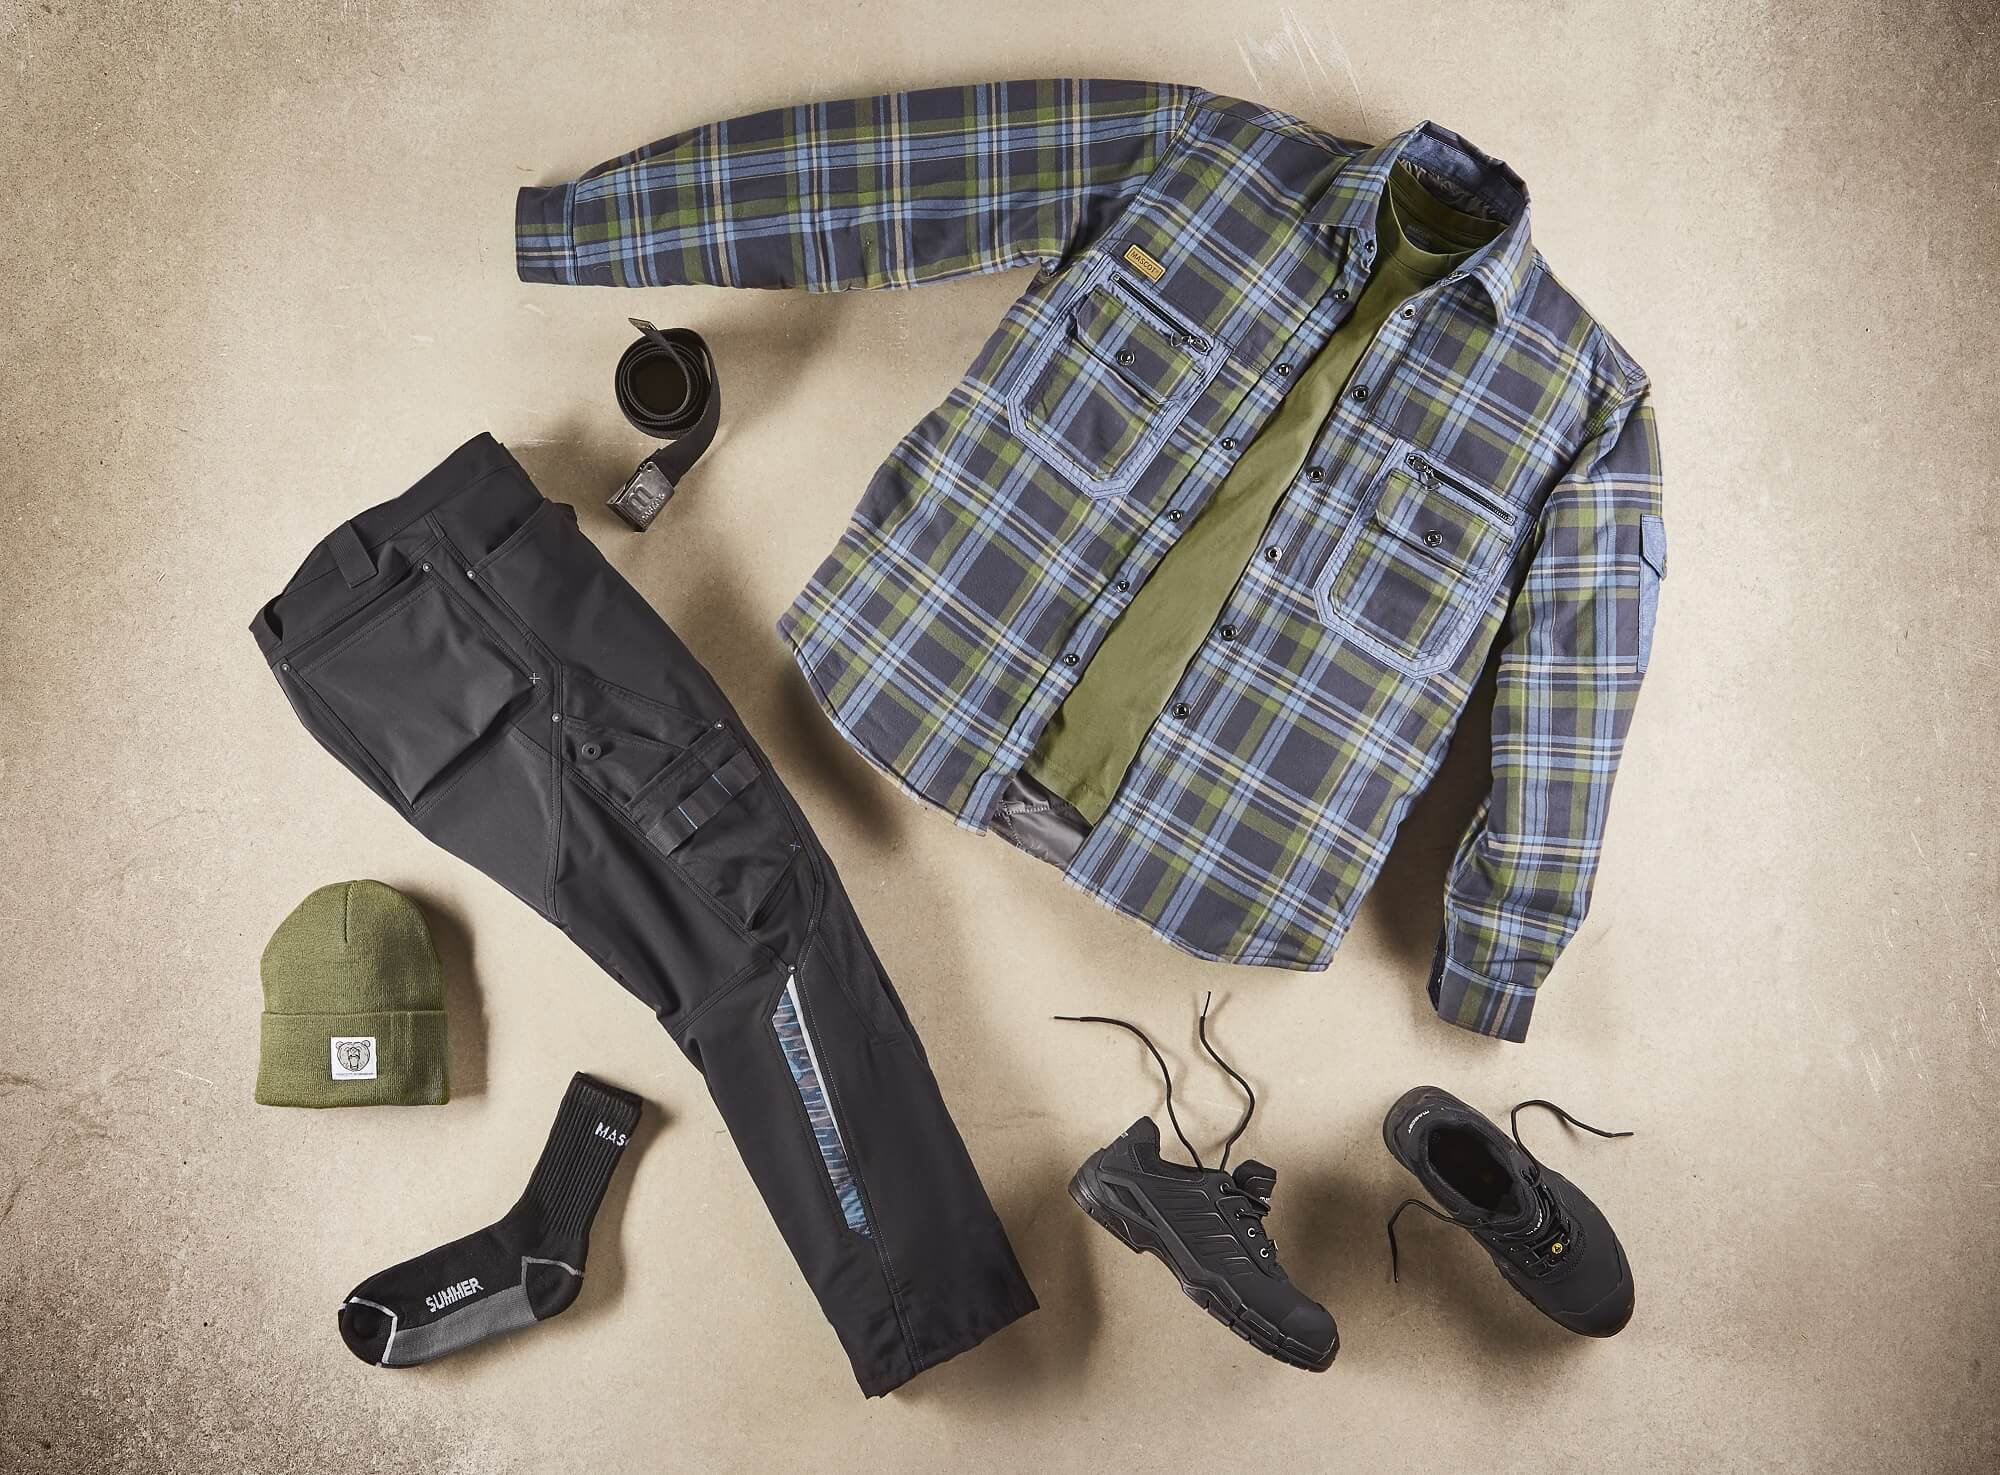 Workwear - Navy, Olive green & Black - Collage